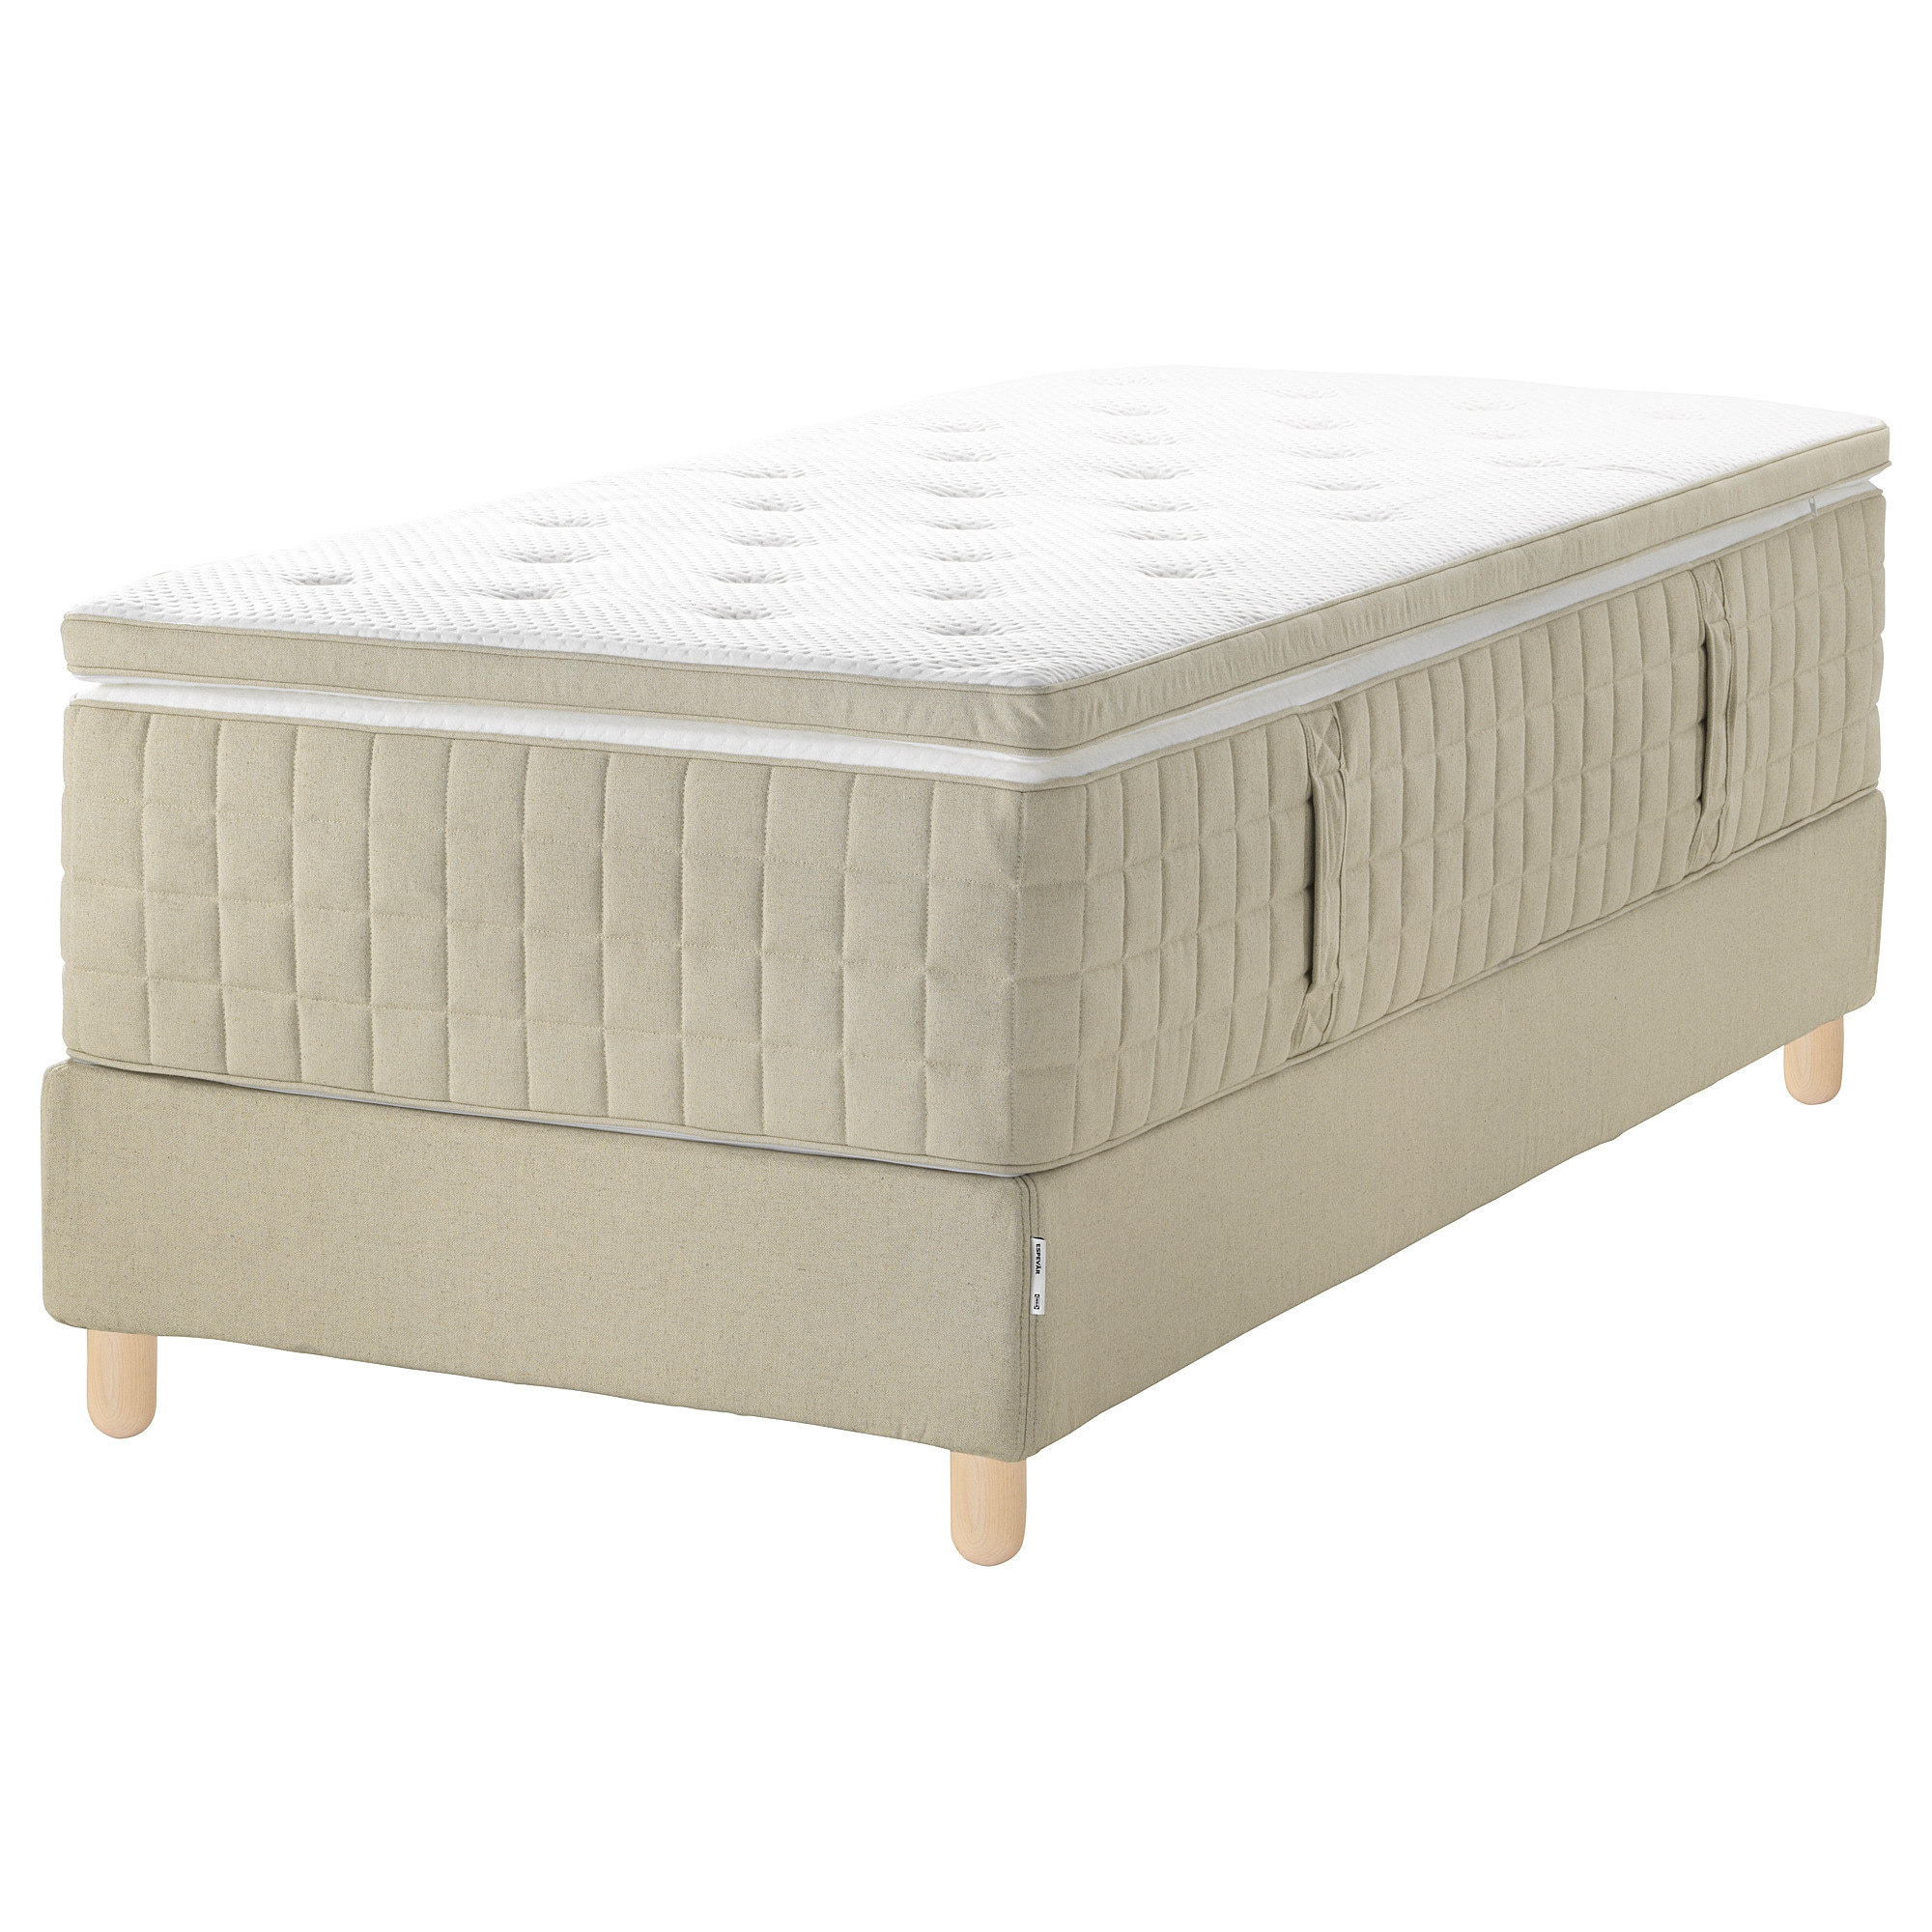 Difference In Slatted Bed Base Ikea Divan Beds Divan Bed Bases Ikea